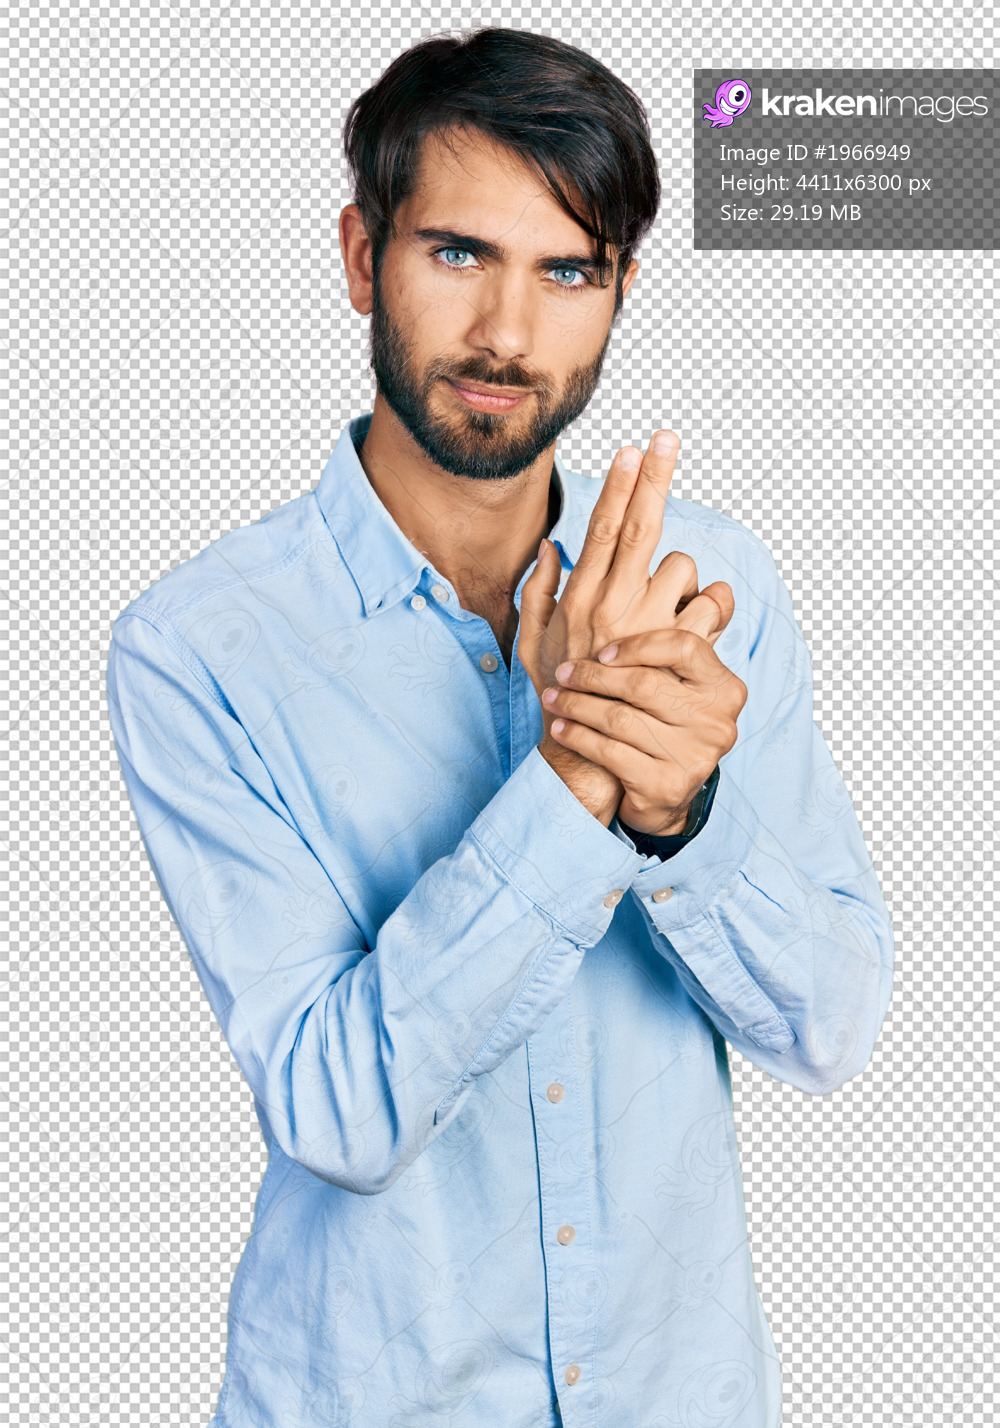 Hispanic man with blue eyes wearing business shirt holding symbolic gun with hand gesture, playing killing shooting weapons, angry face